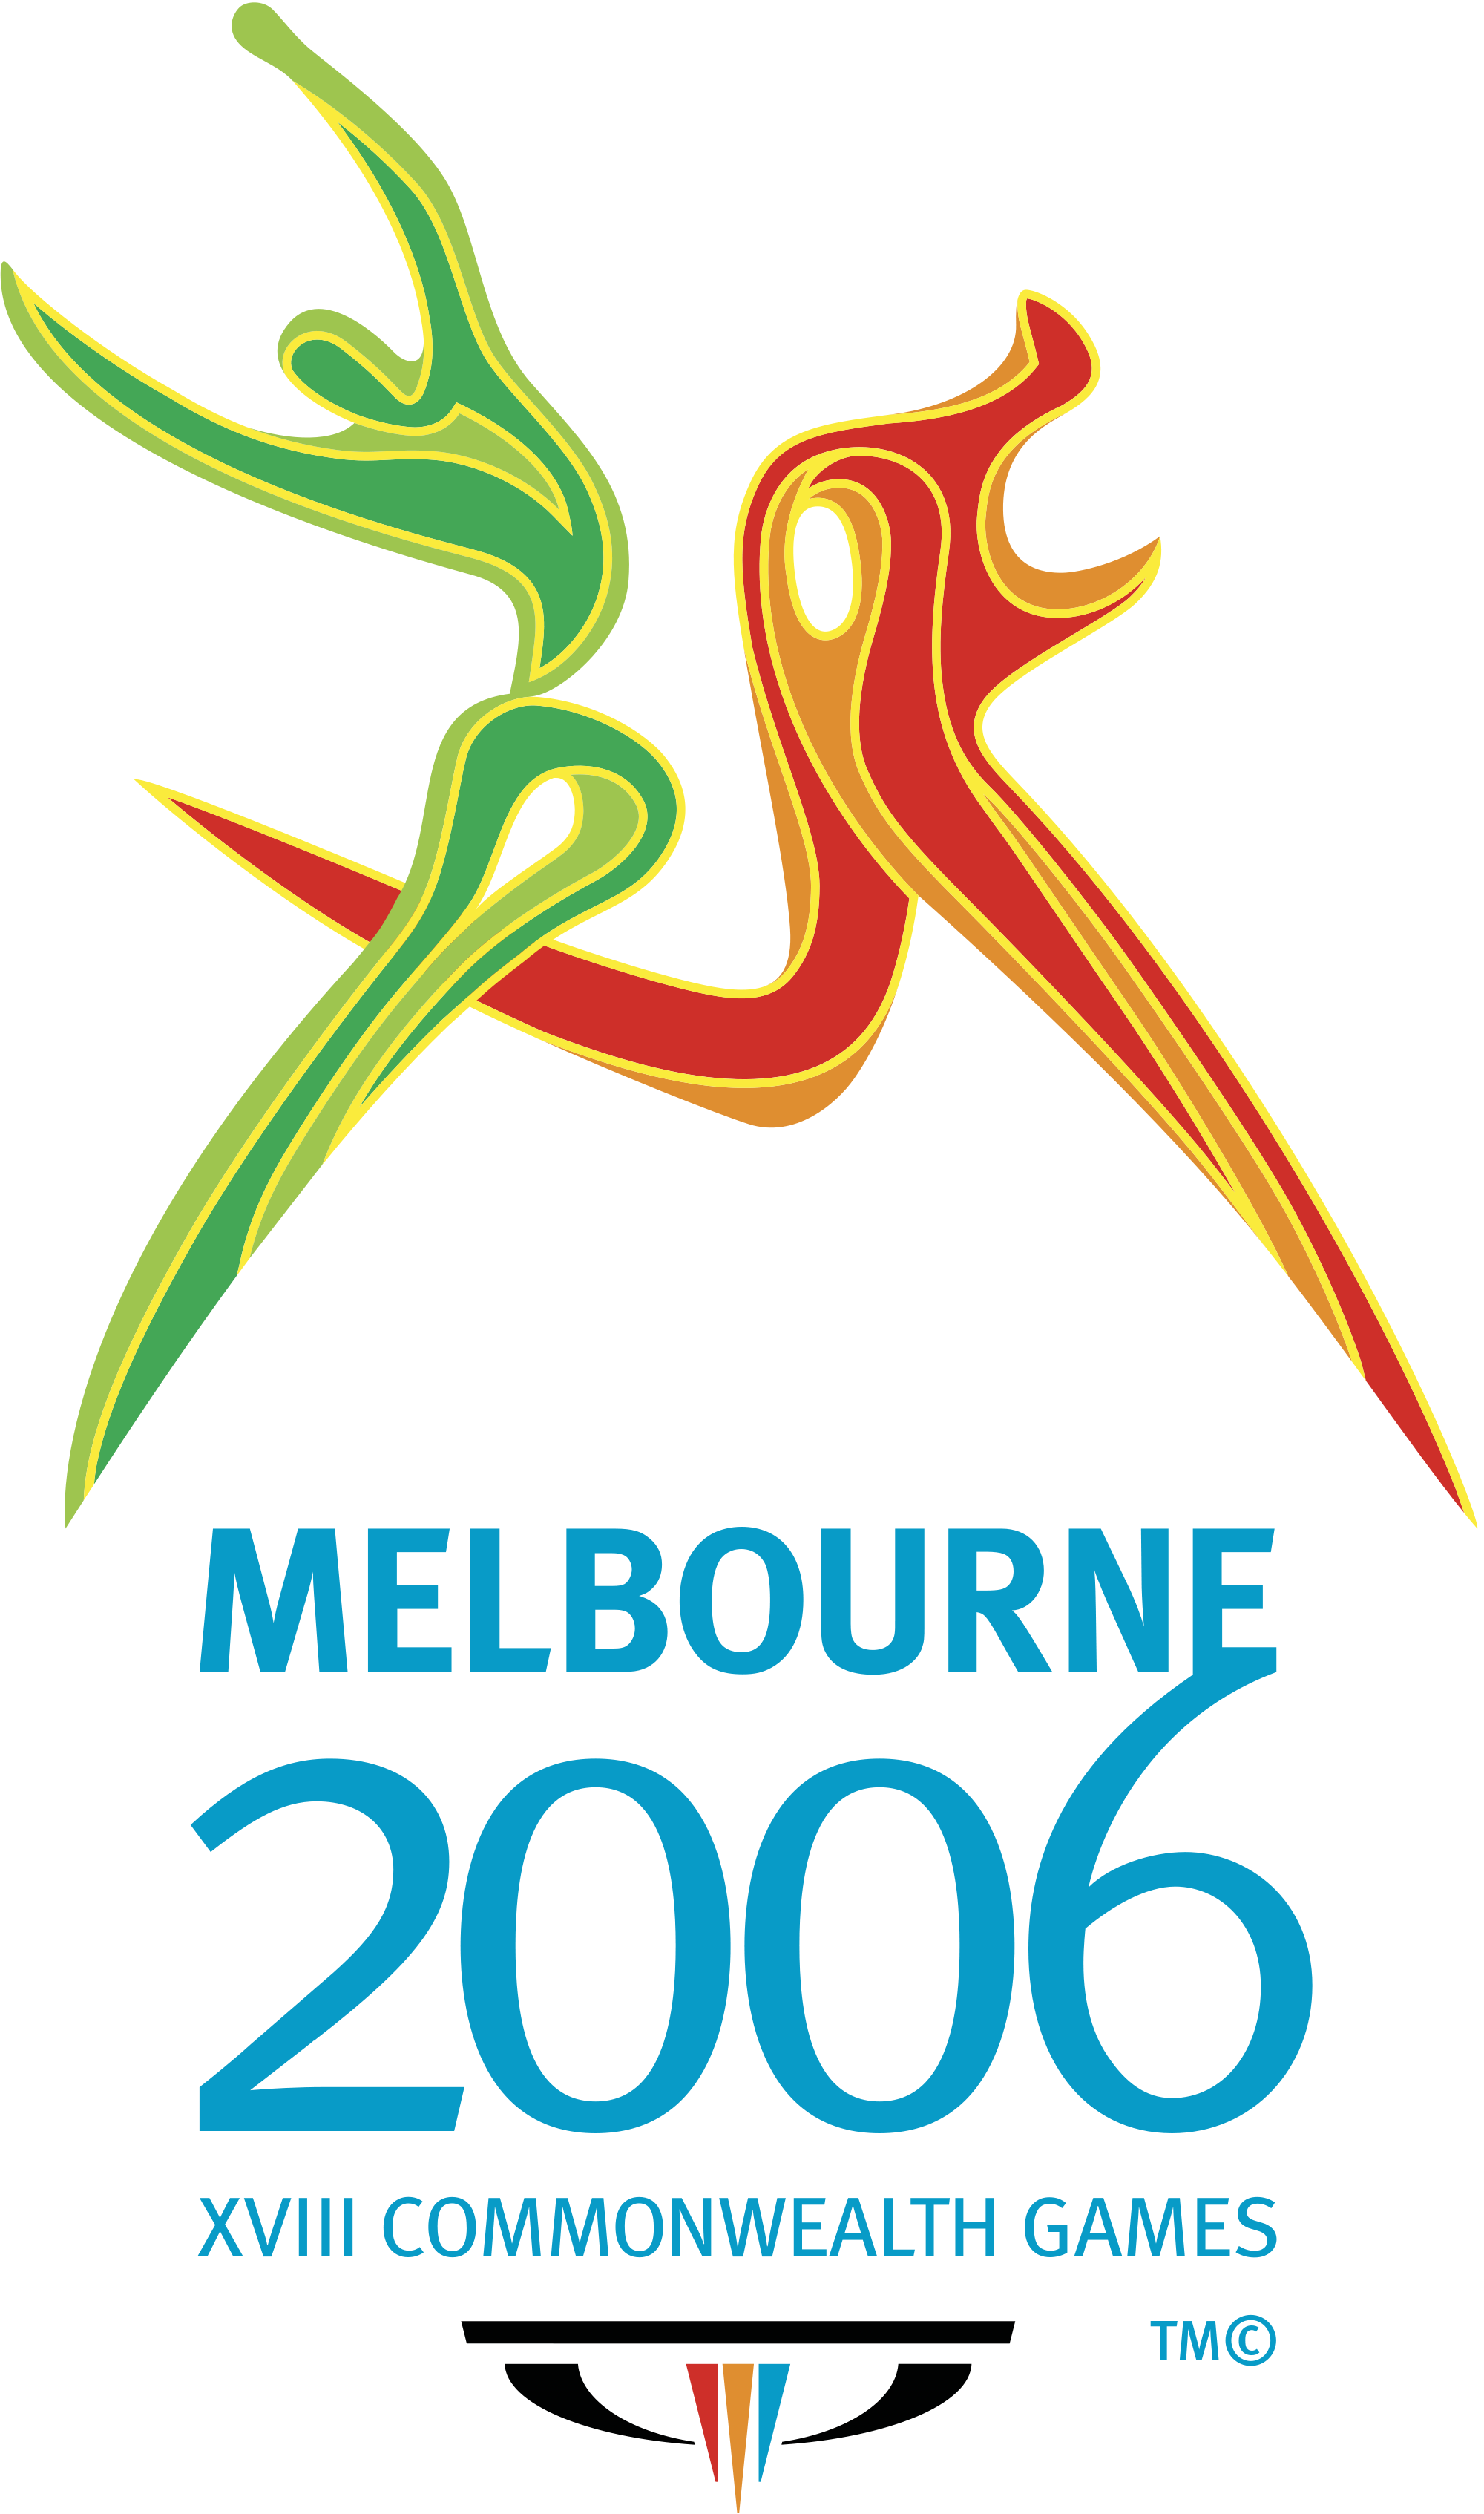 Commonwealth Games 2020 Medal Table.Melbourne 2006 Commonwealth Games Commonwealth Games 2020